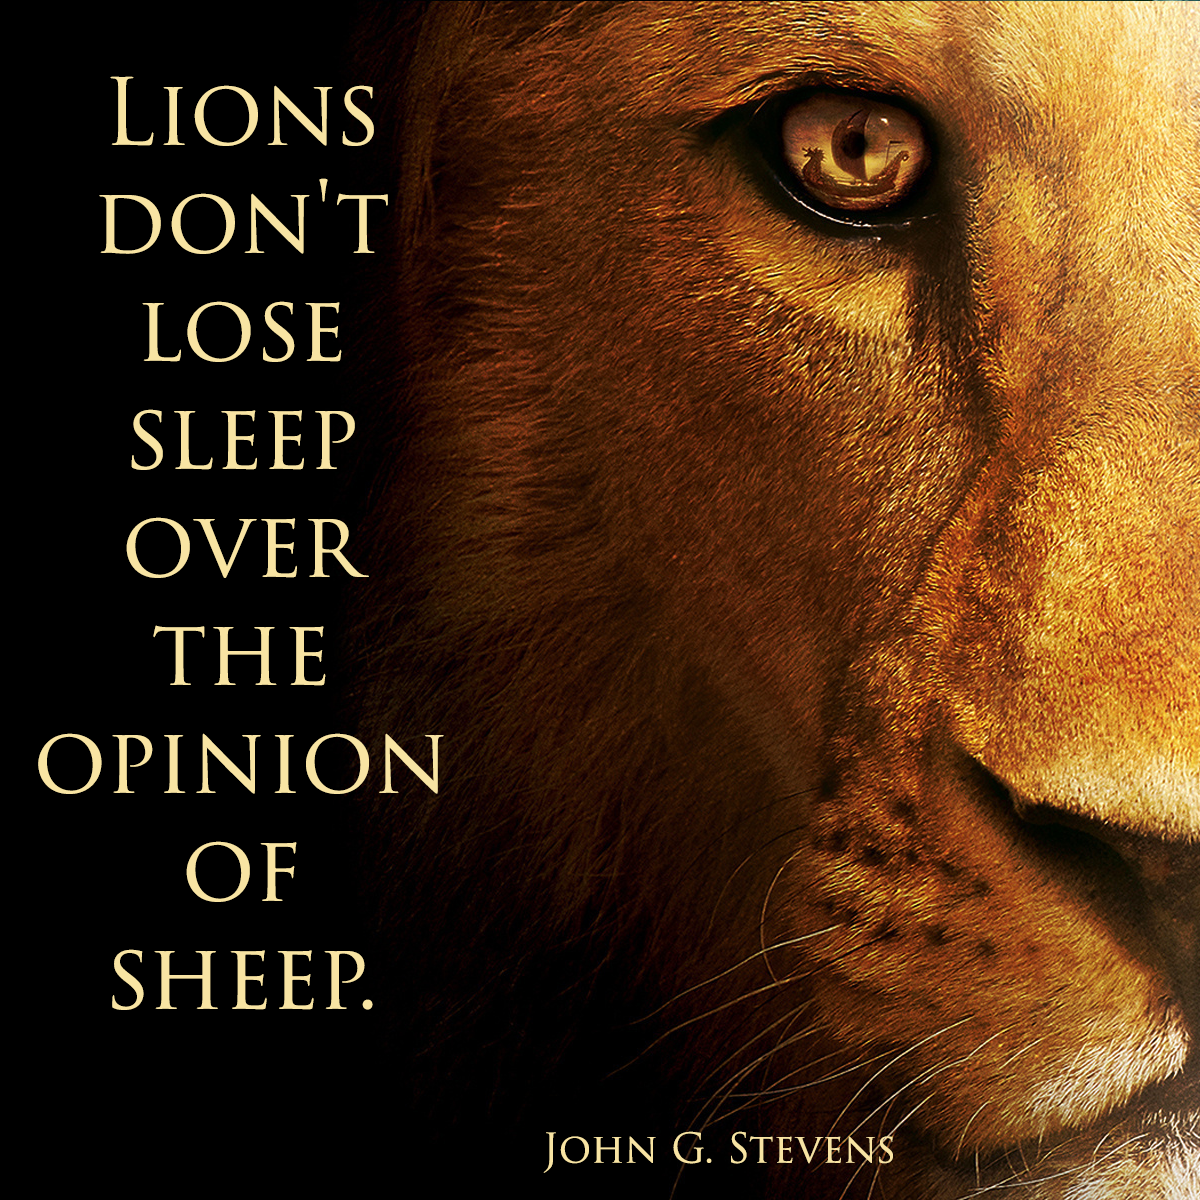 Lion Sheep Quote: Lions Don't Lose Sleep Over